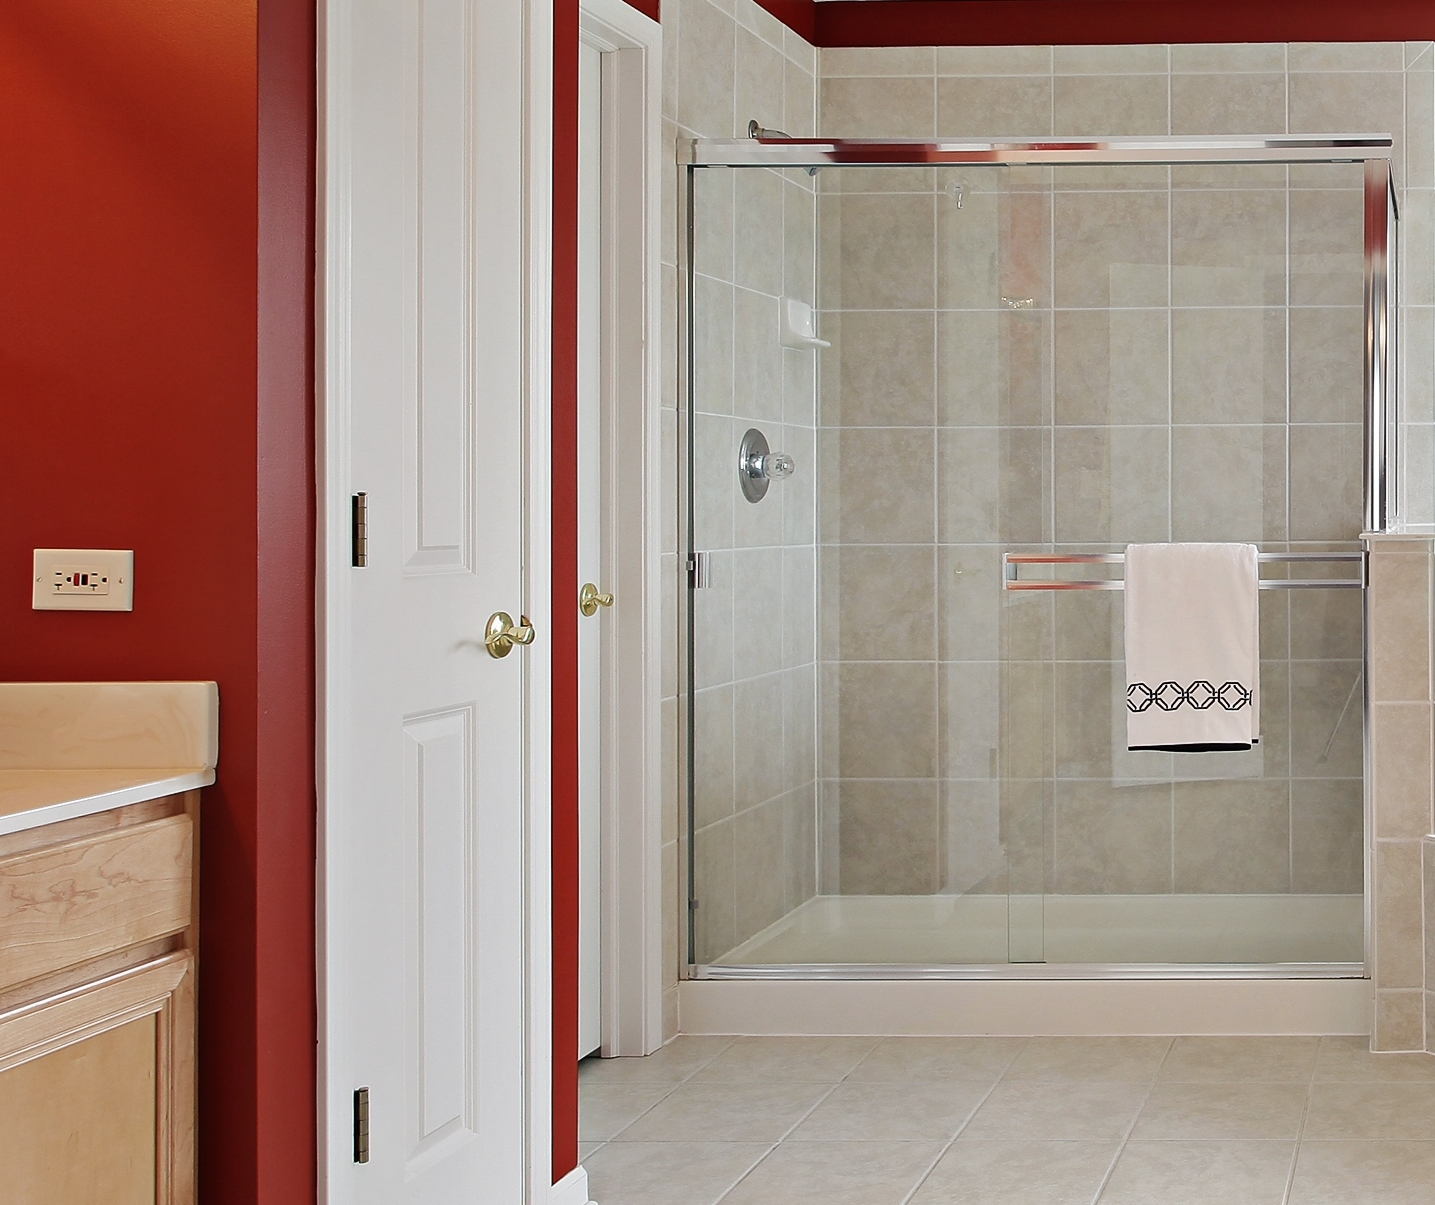 Tub to Shower Conversion Service | Shower Conversions in Kalamazoo, MI